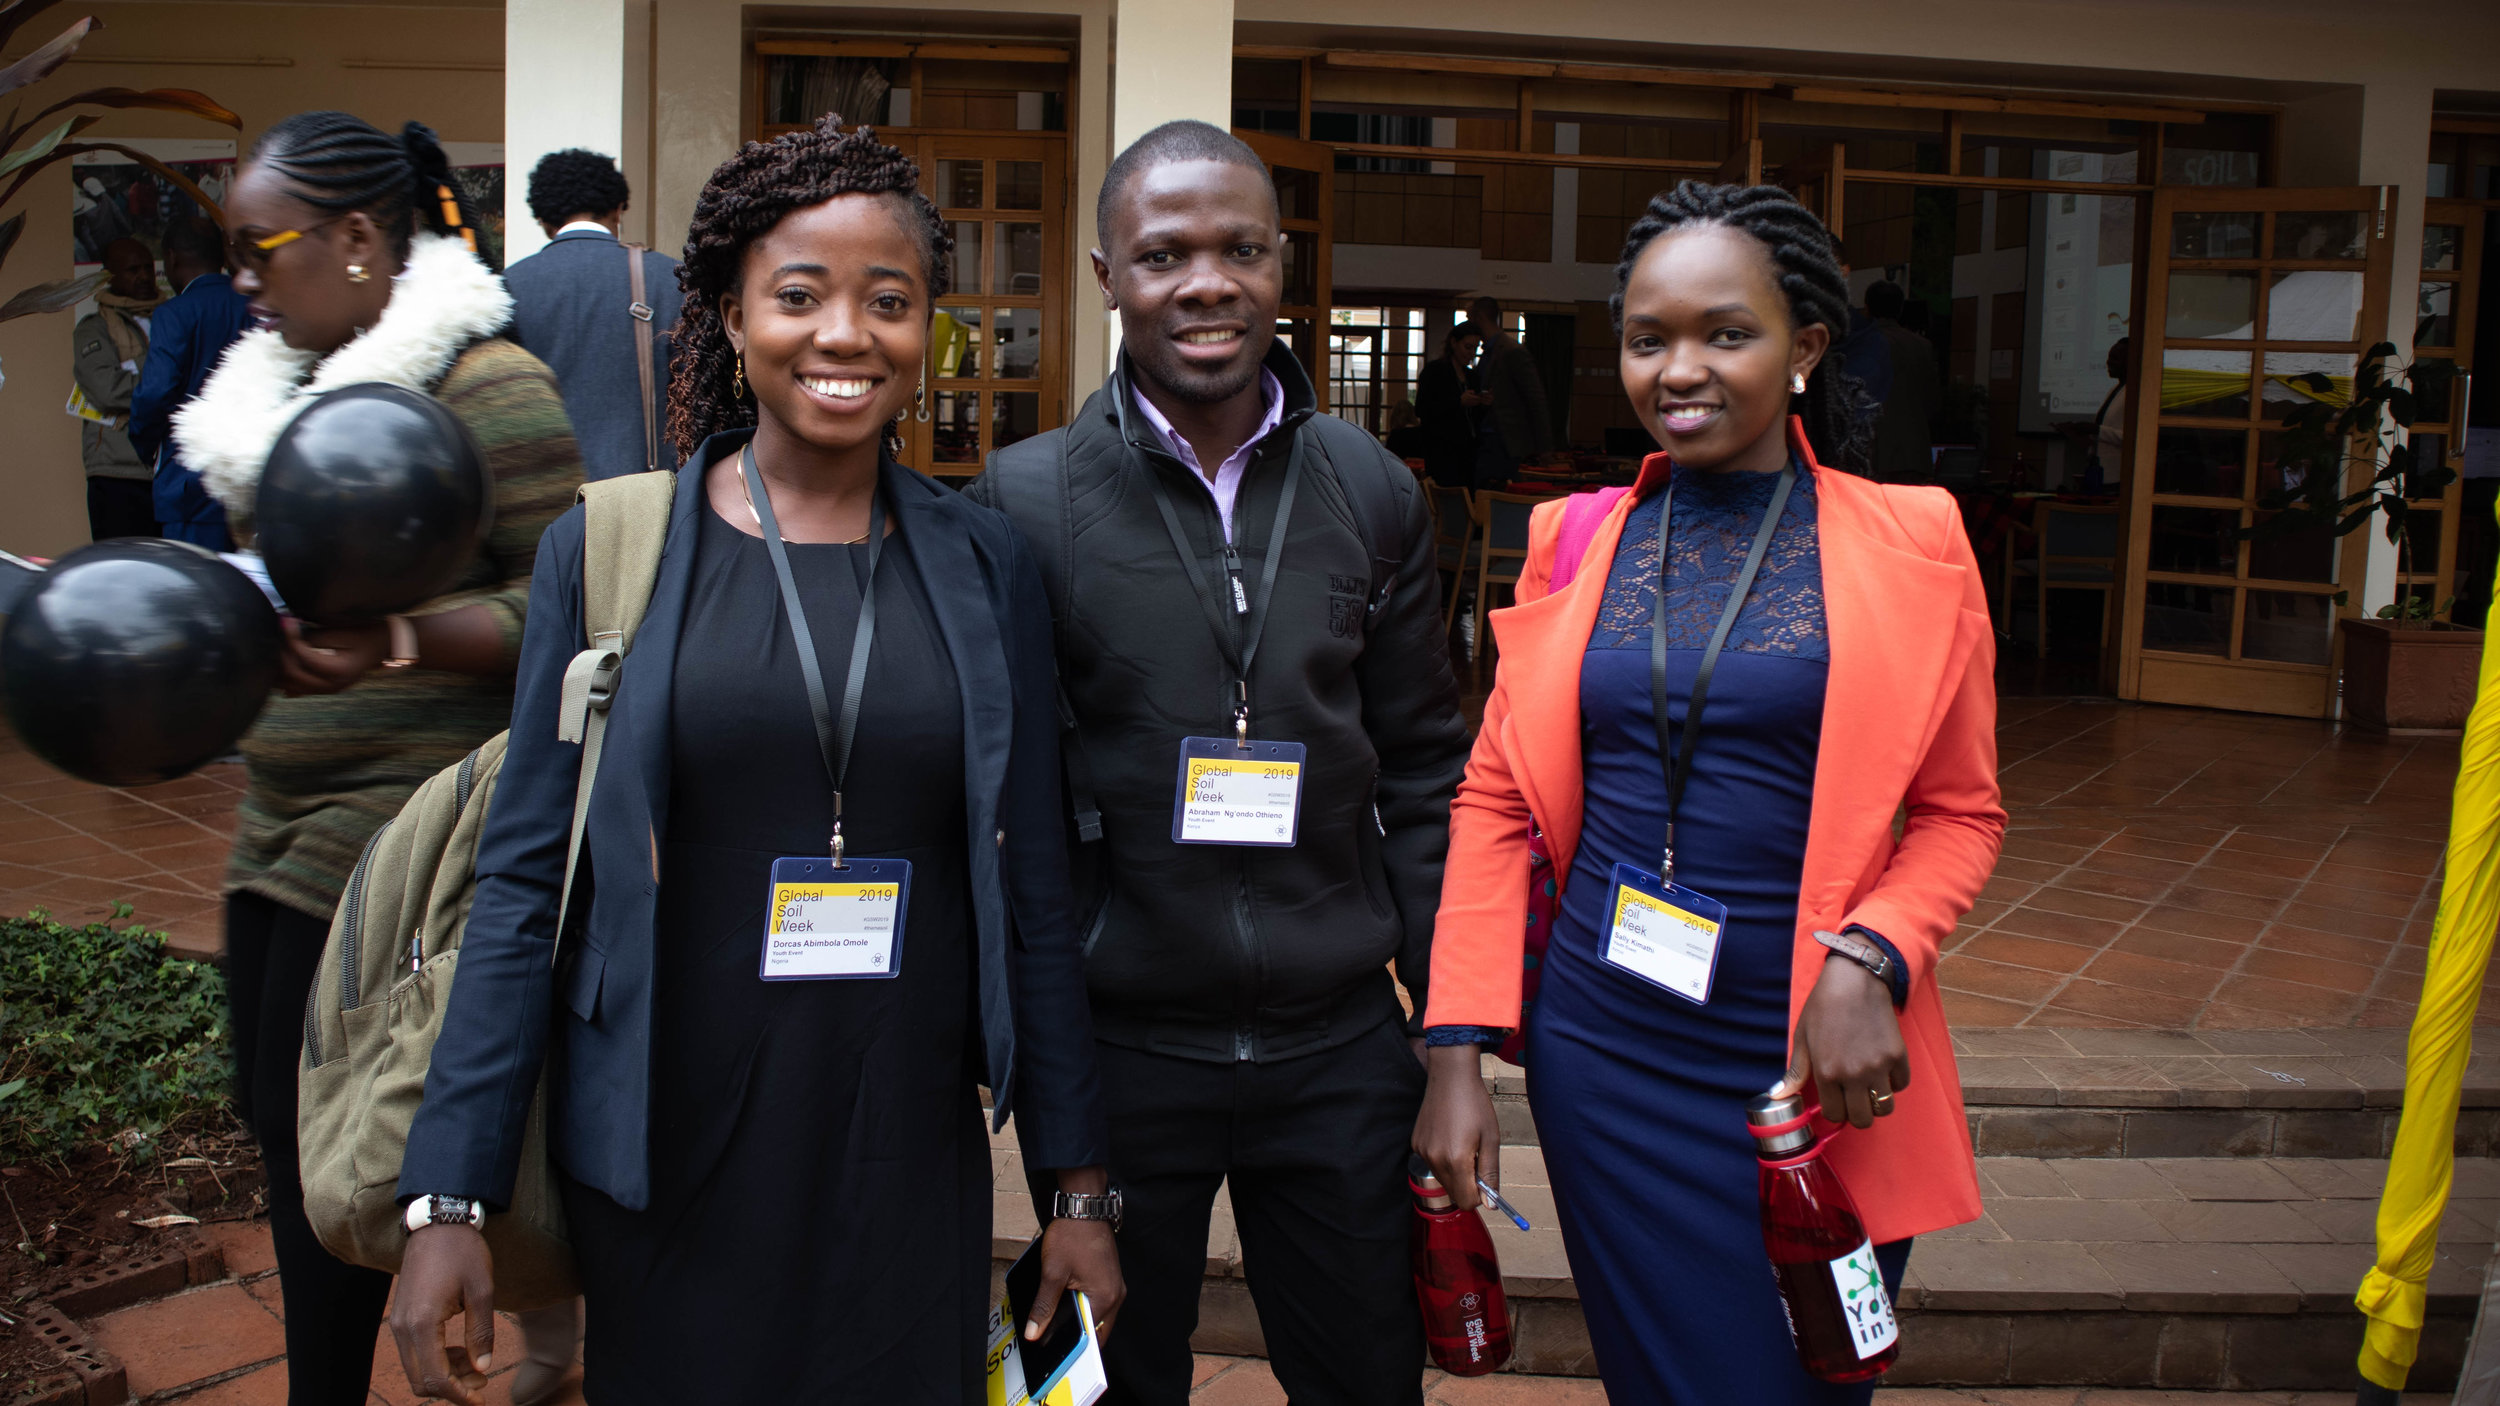 Abraham Ng'ondo (in the middle), Dorcas Abimbola (on the left) and Sally Kimathi (on the right)